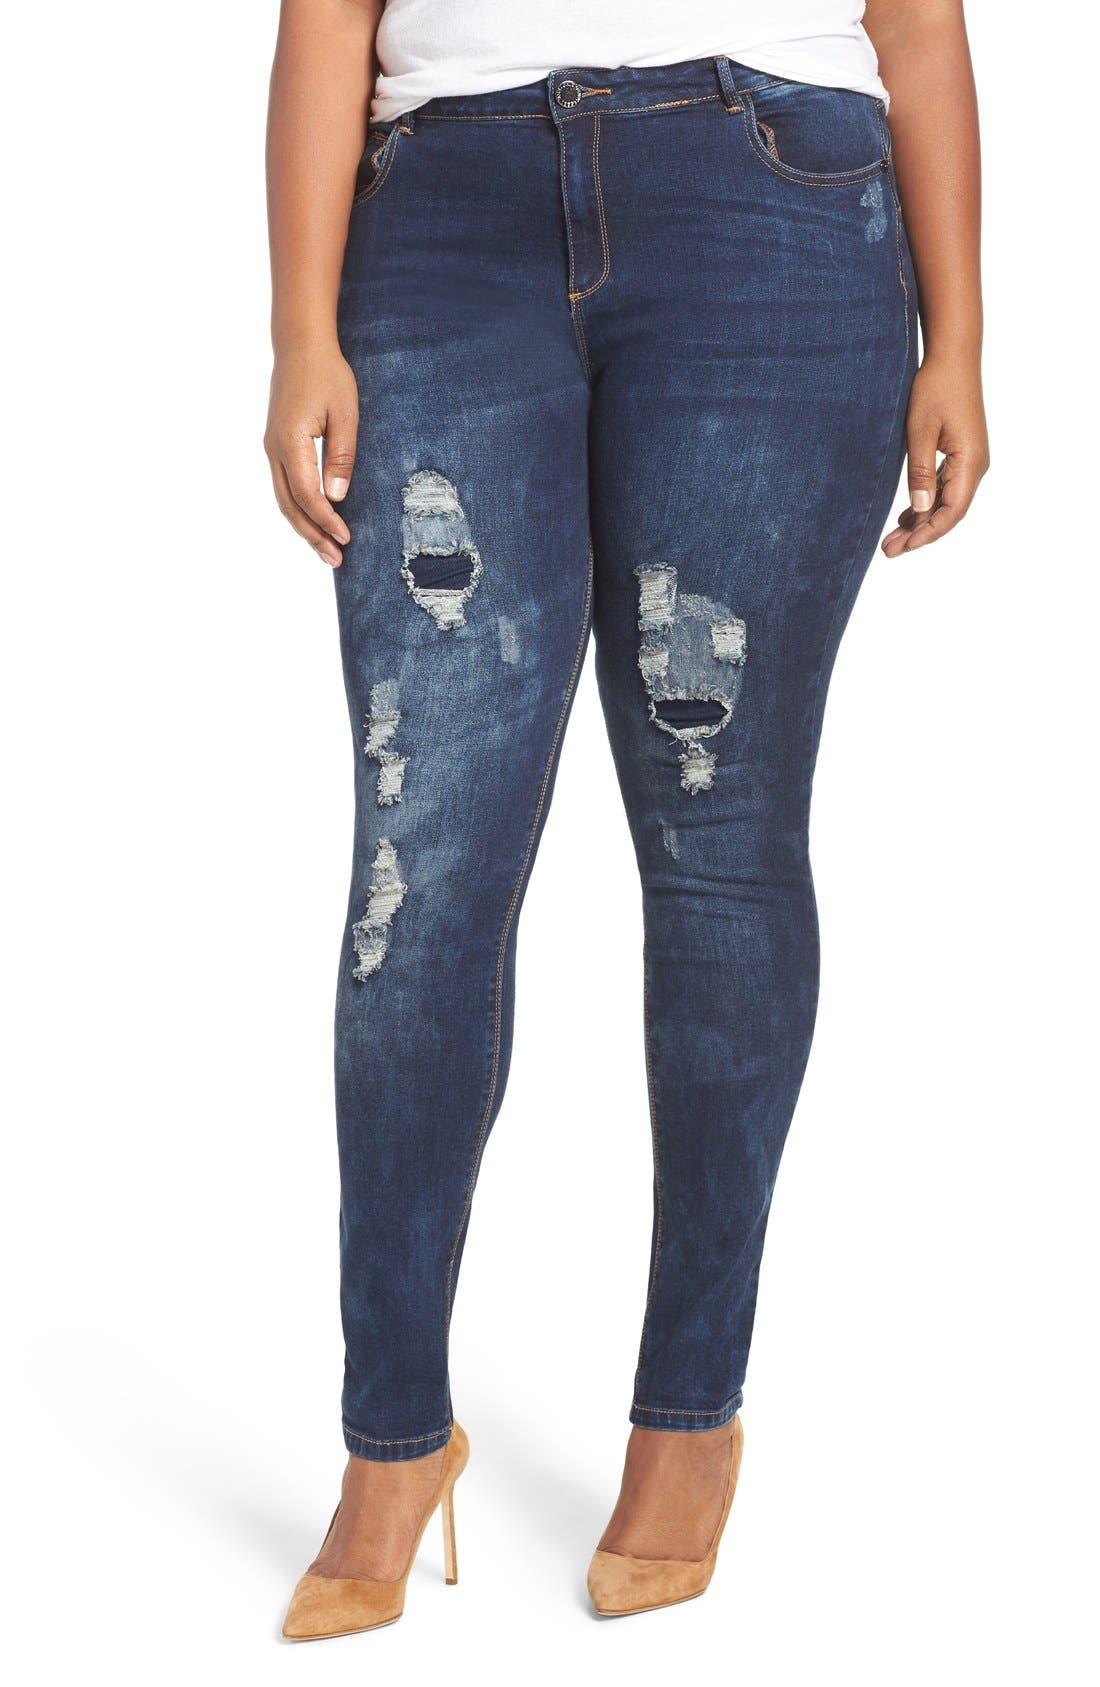 Alternate Image 1 Selected - City Chic 'Dismantle' Ripped Stretch Skinny Jeans (Plus Size)